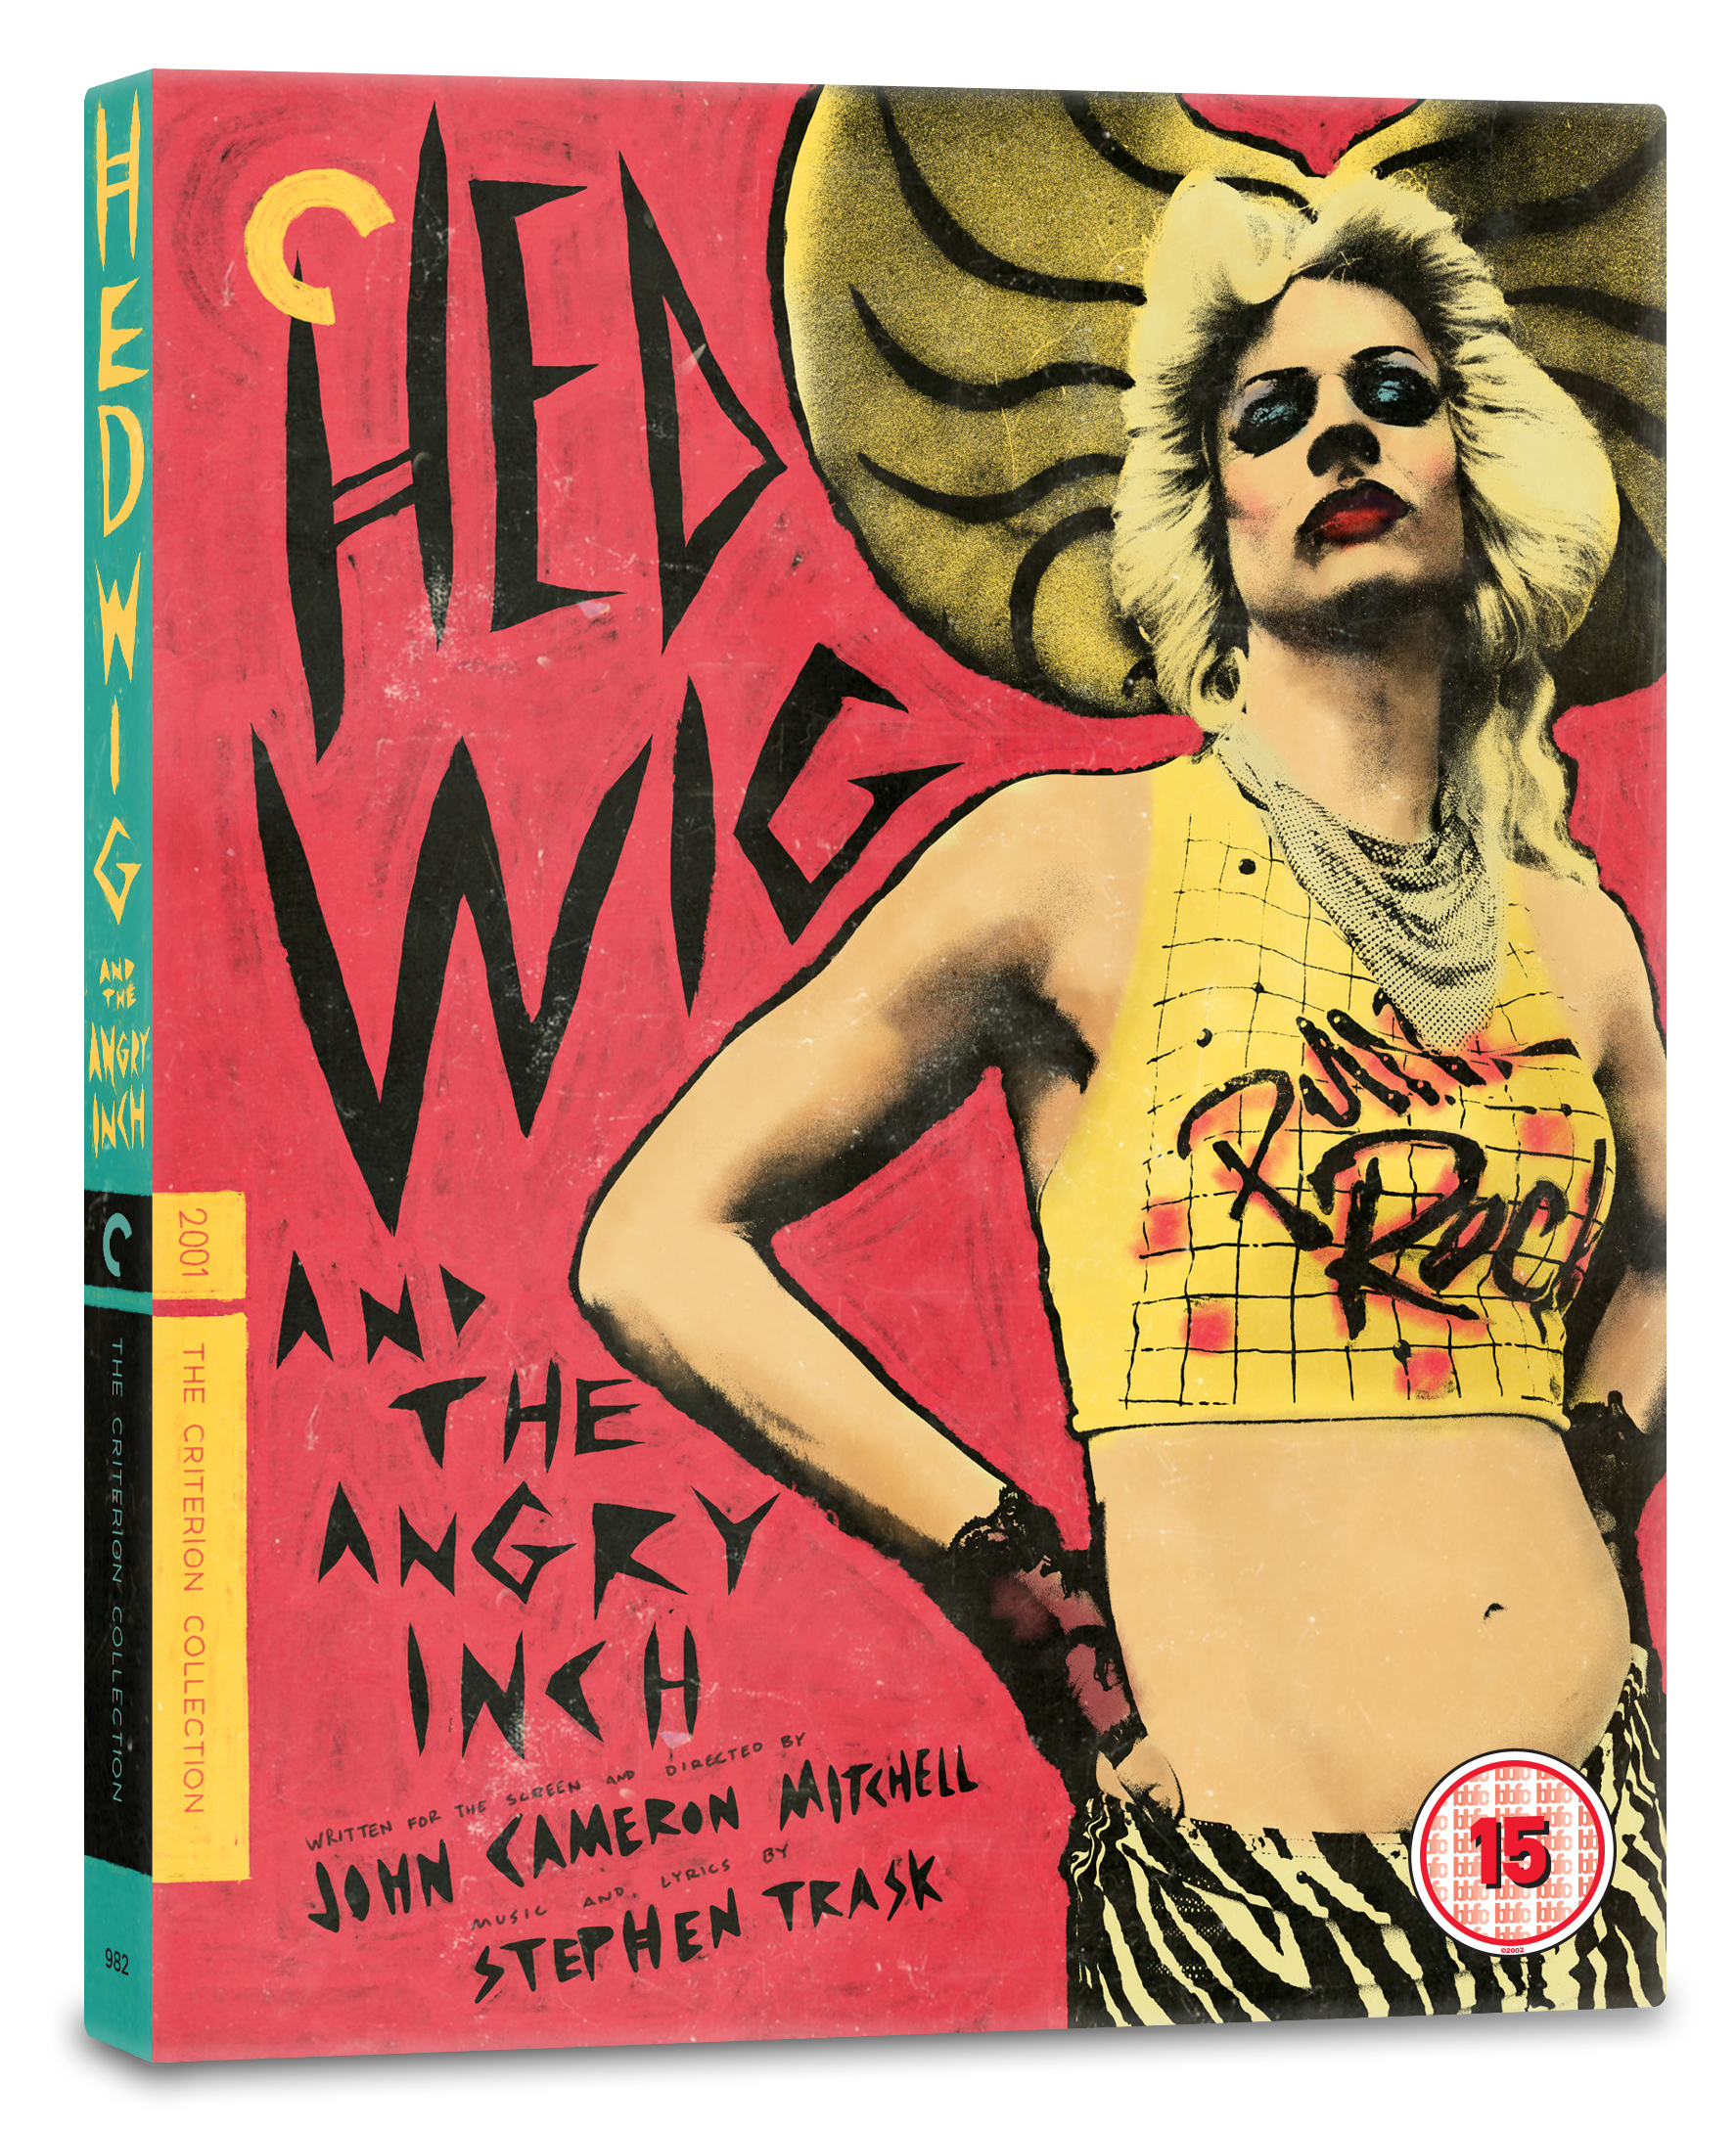 Buy Hedwig and the Angry Inch (Blu-ray)